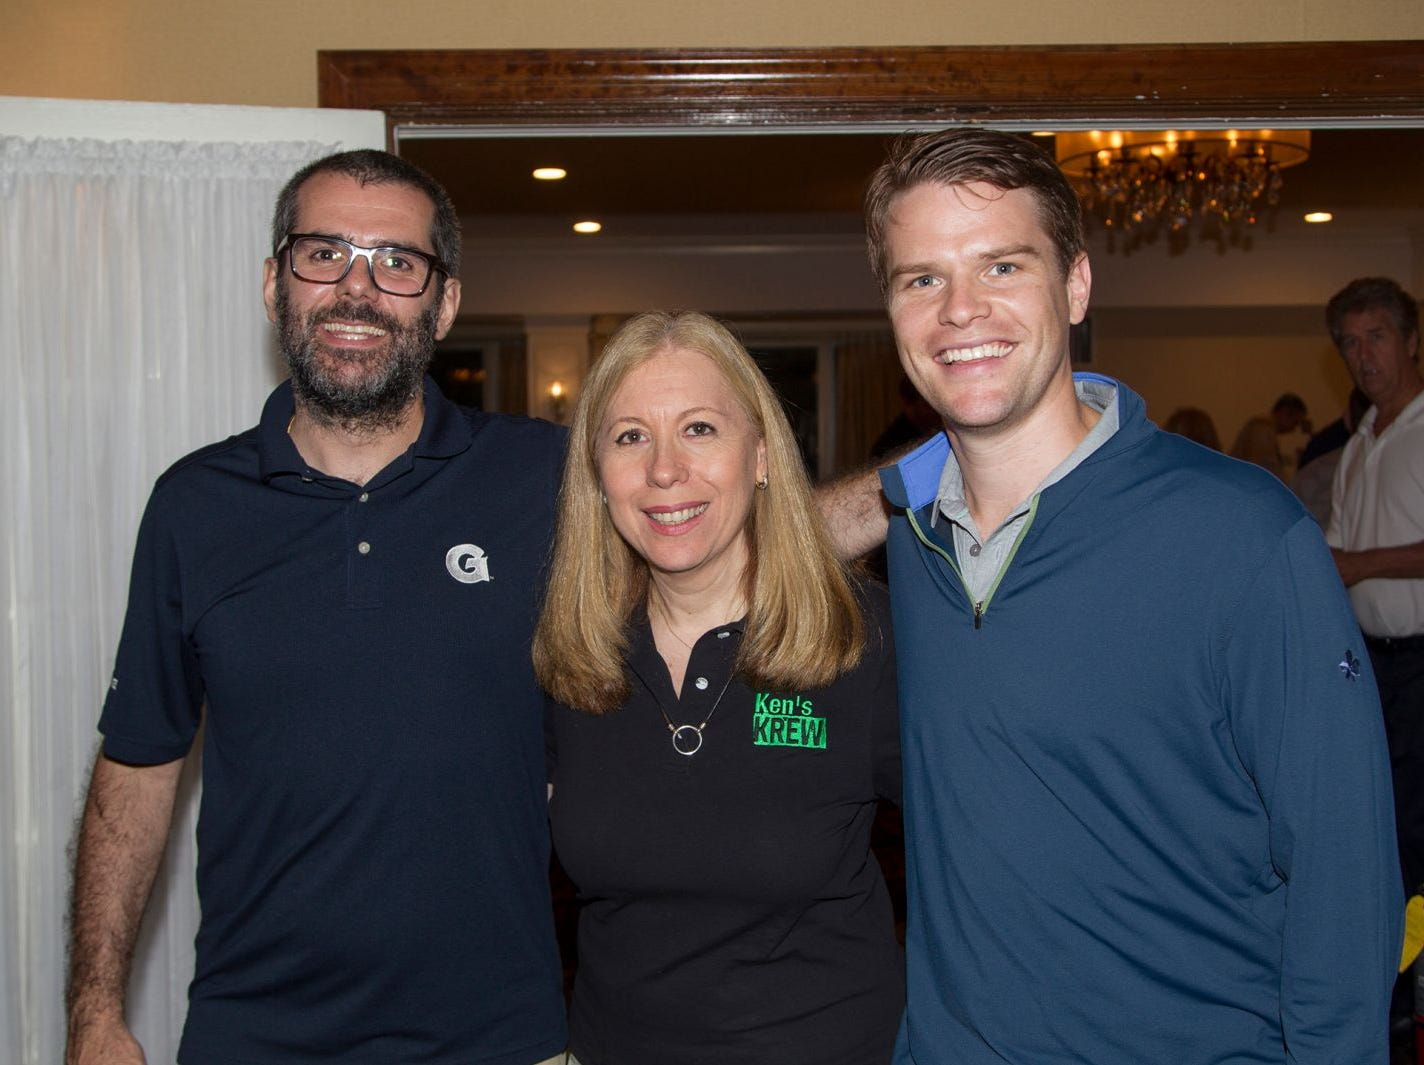 Matteo Gallo, Suzy Goldberger, Ryab O'Donnell. Ken's Krew Golf Outing at White Beeches Country Club in Haworth. Ken's Krew provides vocational training and job placement services for young adults with intellectual and developmental disabilities. 10/09/2018